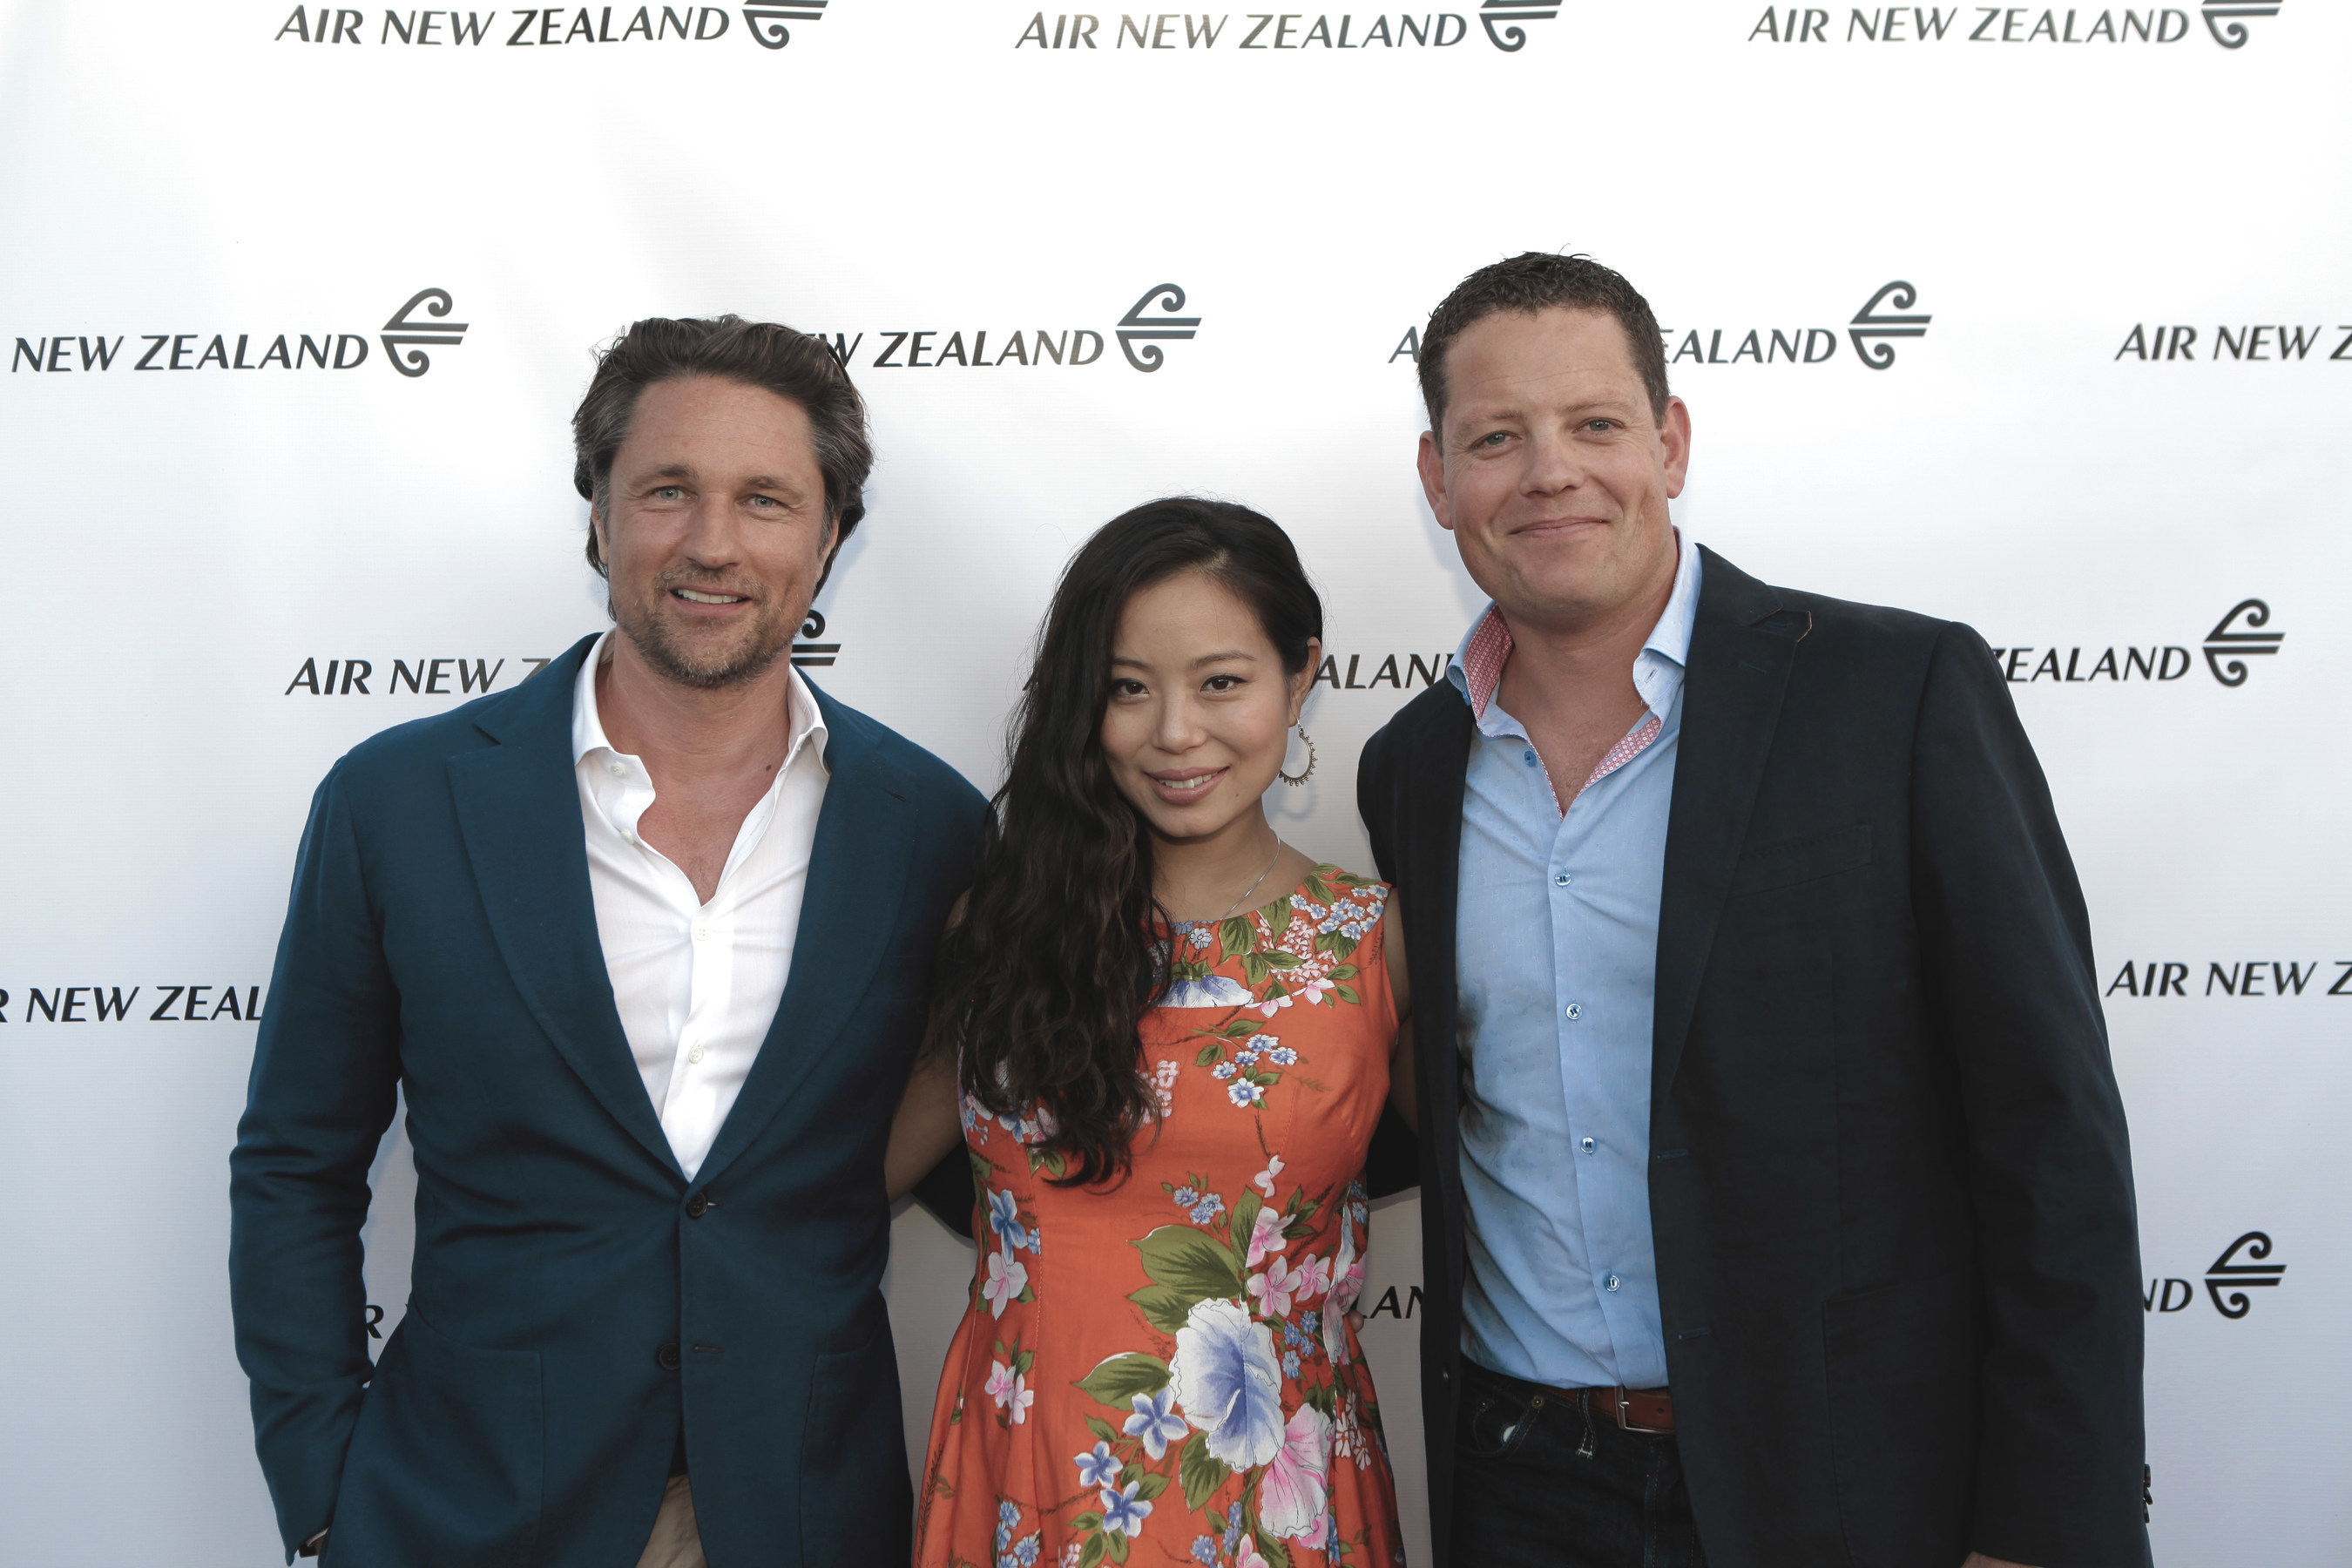 """Kiwi celebrities Martin Henderson and Michelle Ang join Nick Judd, Air New Zealand's Regional General Manager, The Americas, for the airline's red carpet premiere of its newest safety video, """"Safety in Hollywood."""""""